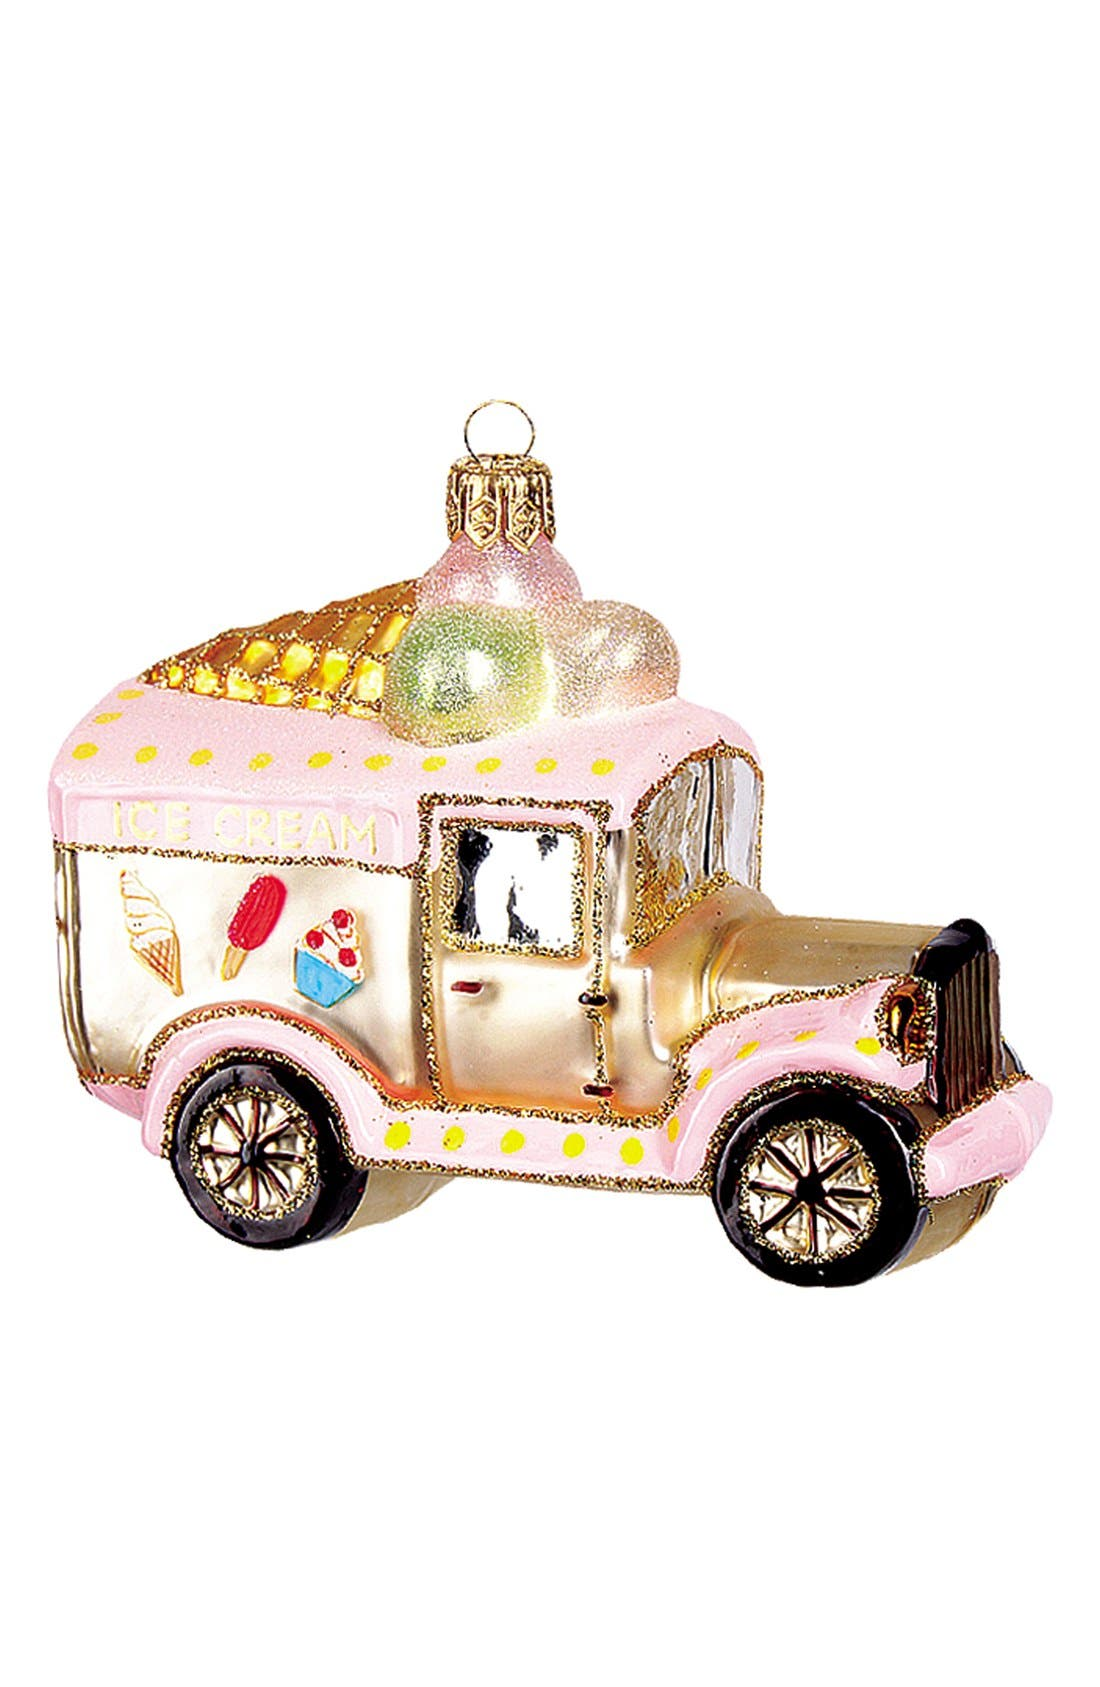 Nordstrom at Home Ice Cream Truck Glass Ornament